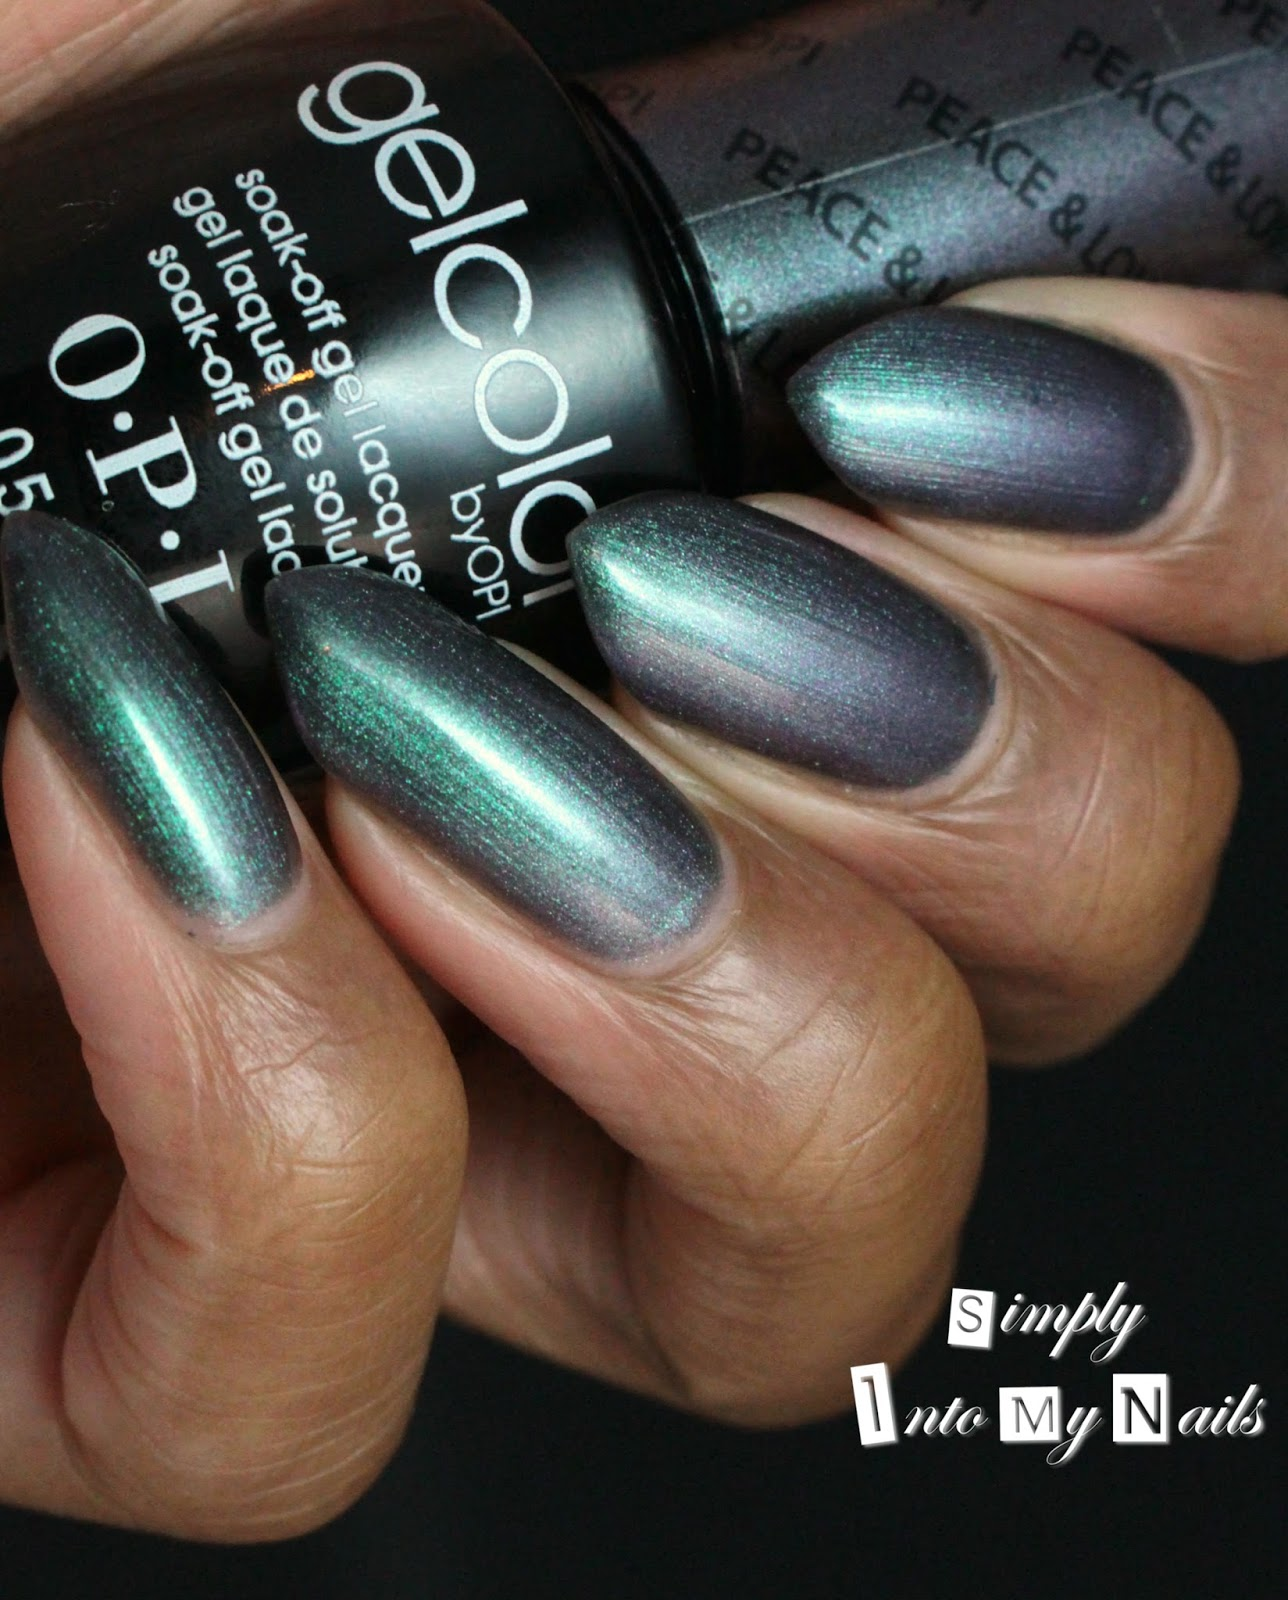 A2Z Series - L Is For \'Lines\' | Simply Into My NAILS